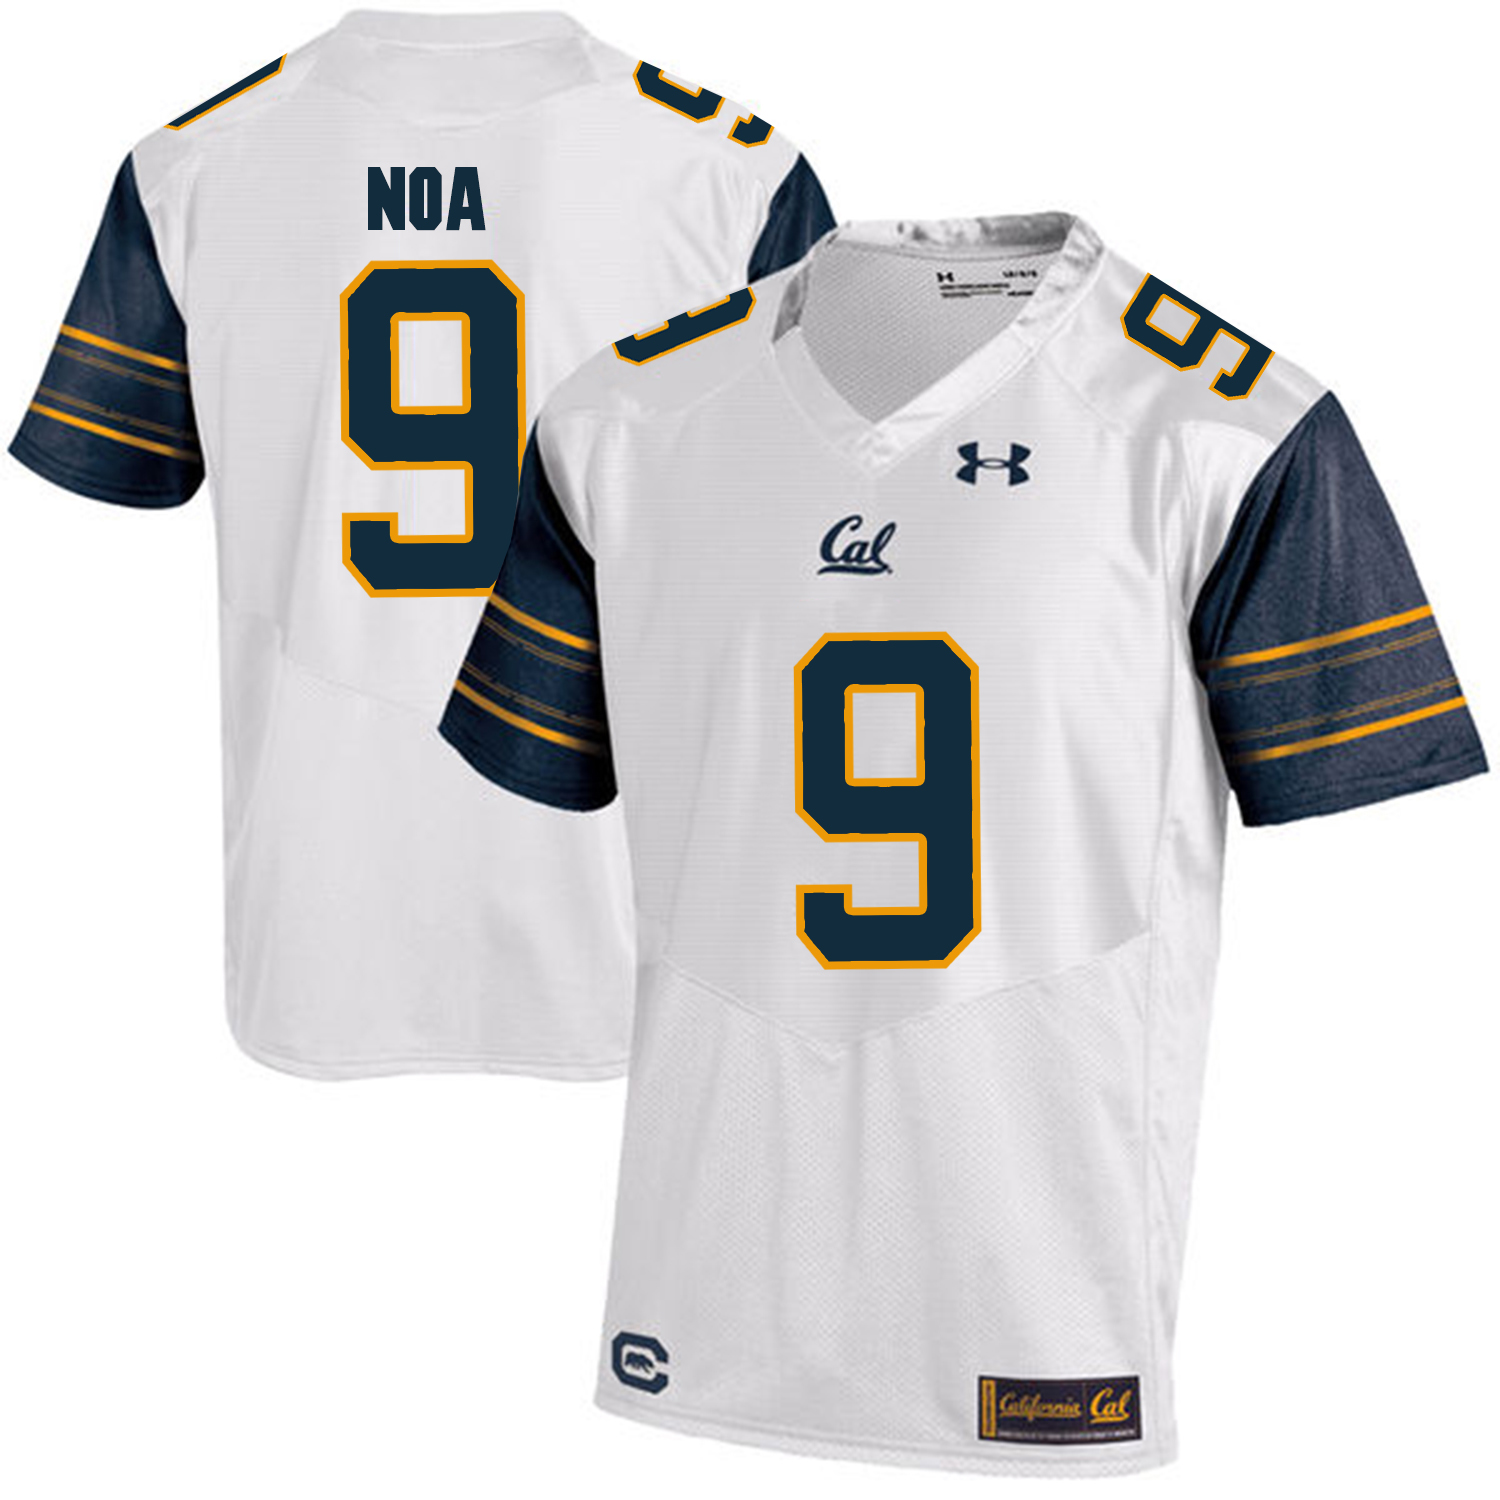 California Golden Bears 9 Kanawai Noa White College Football Jersey